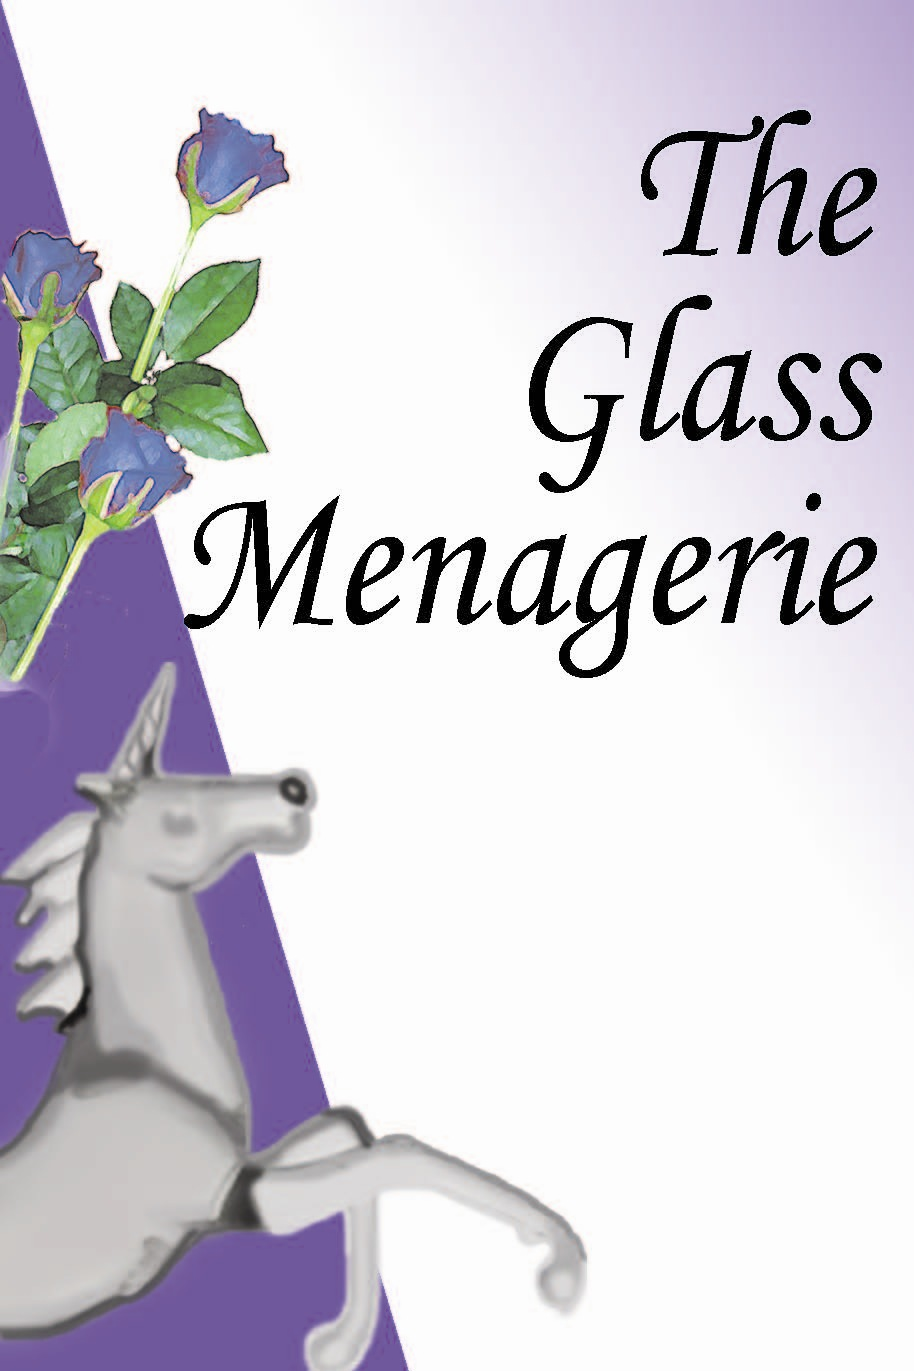 the glass menagerie by tennessee williams notes dr vishwanath the glass menagerie by tennessee williams notes dr vishwanath bite